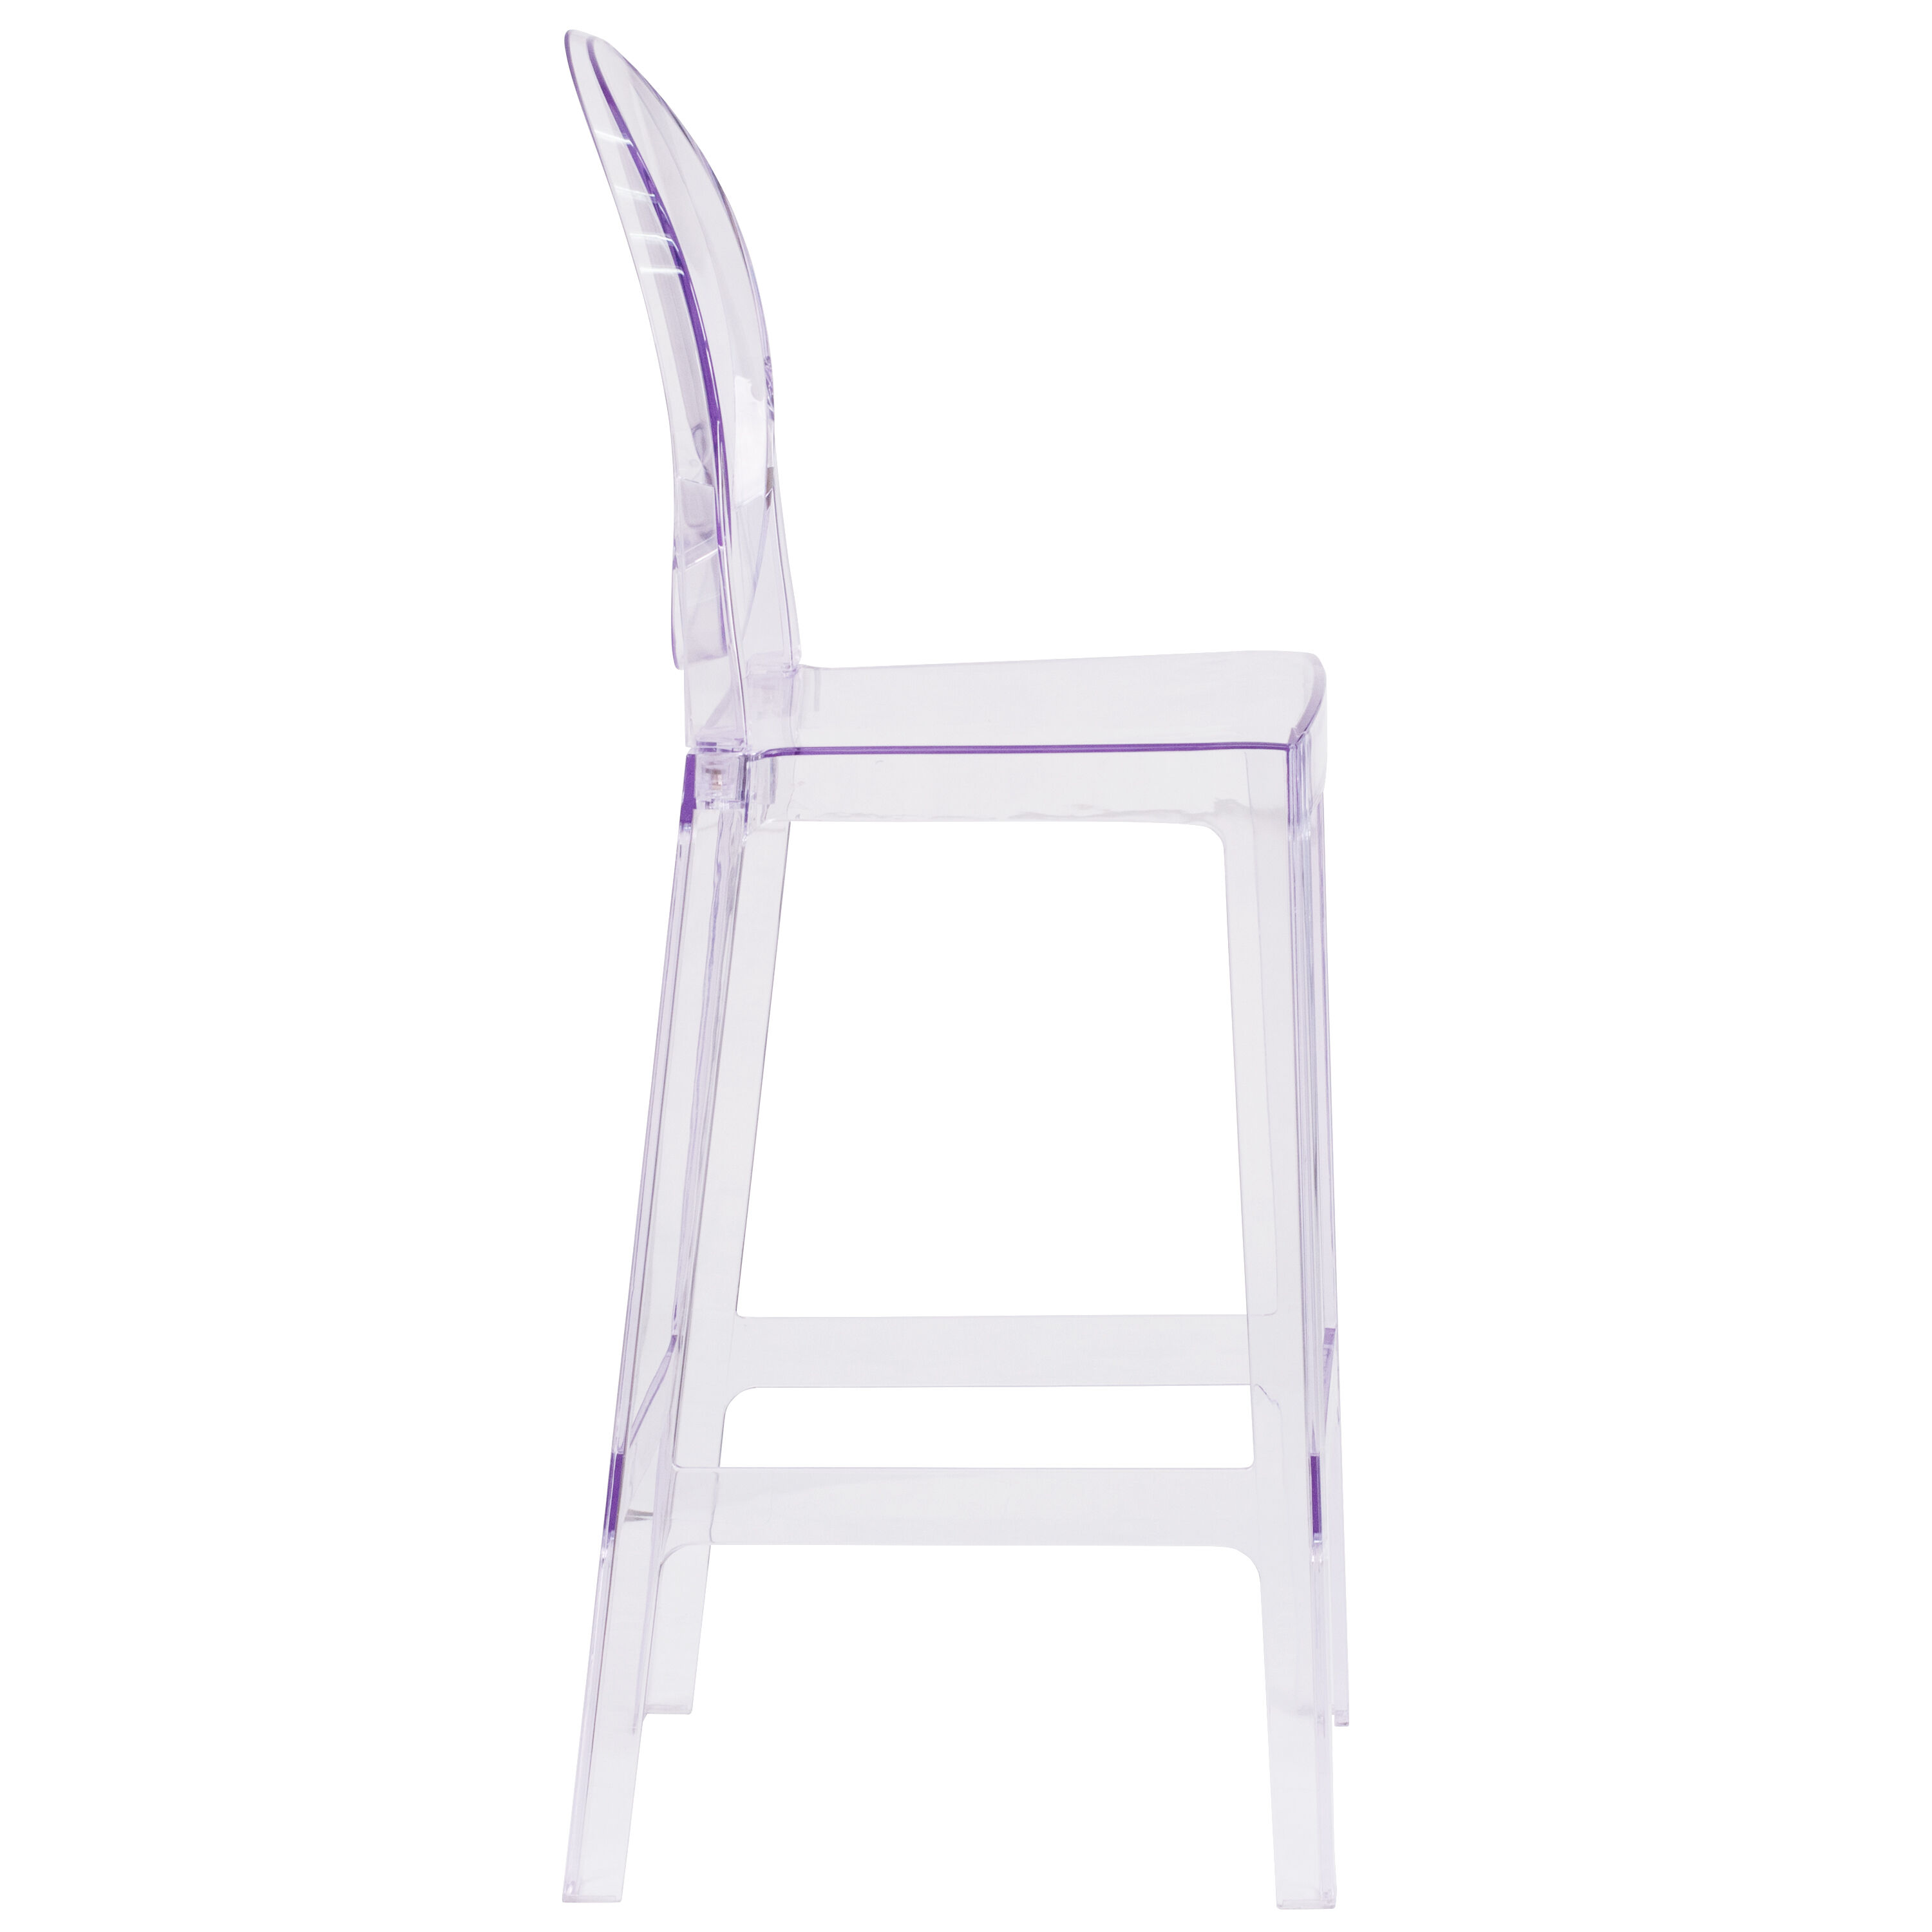 ghost chair bar stool bottom pads oval back barstool ow ghostback 29 gg bestchiavarichairs com our with in transparent crystal is on sale now